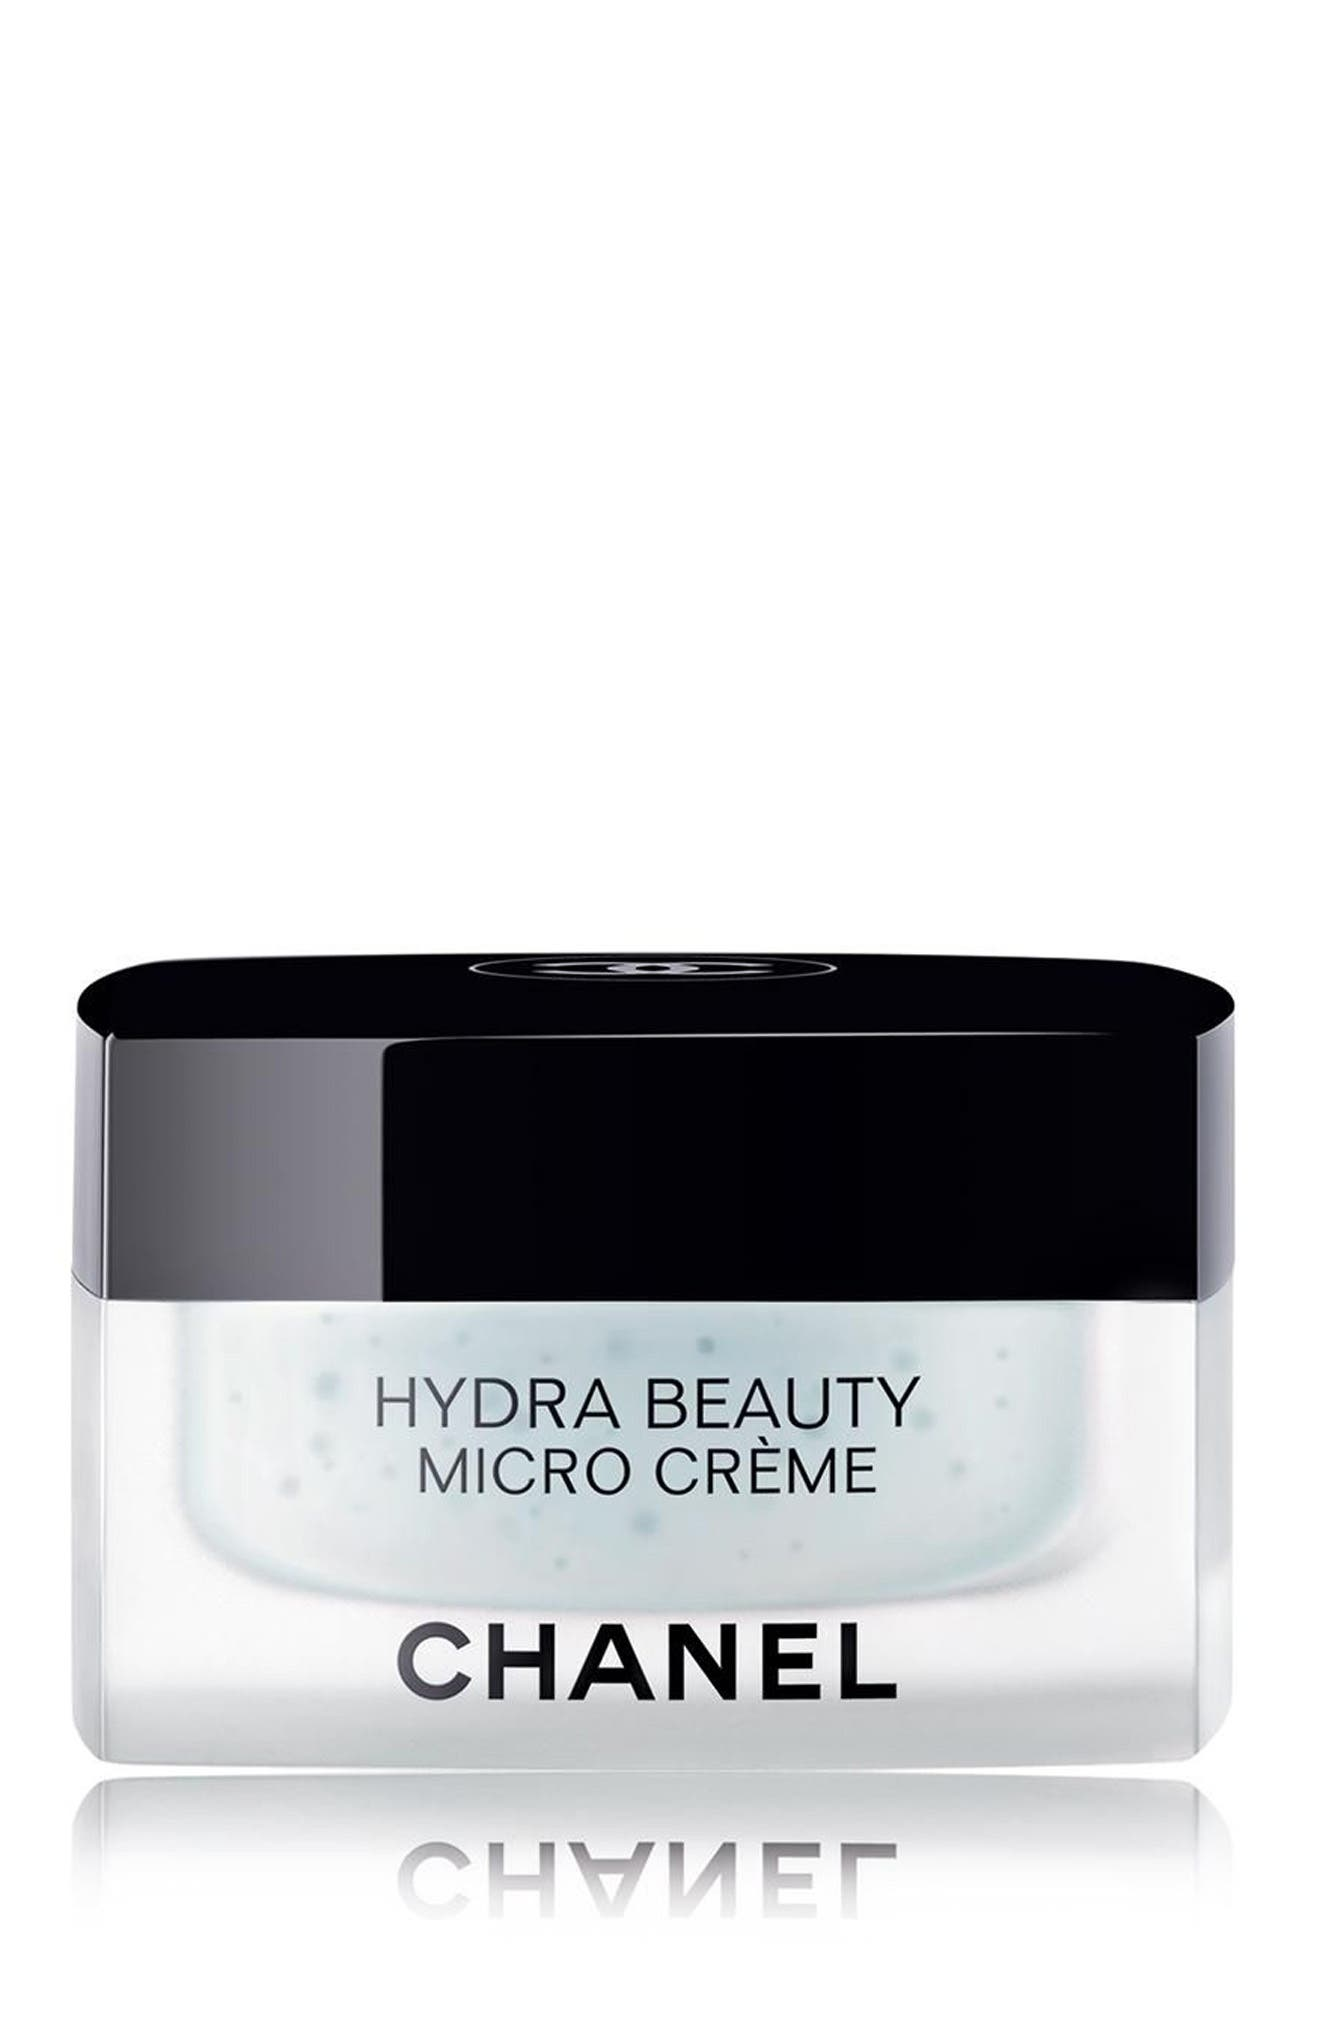 Alternate Image 1 Selected - CHANEL HYDRA BEAUTY MICRO CRÈME 